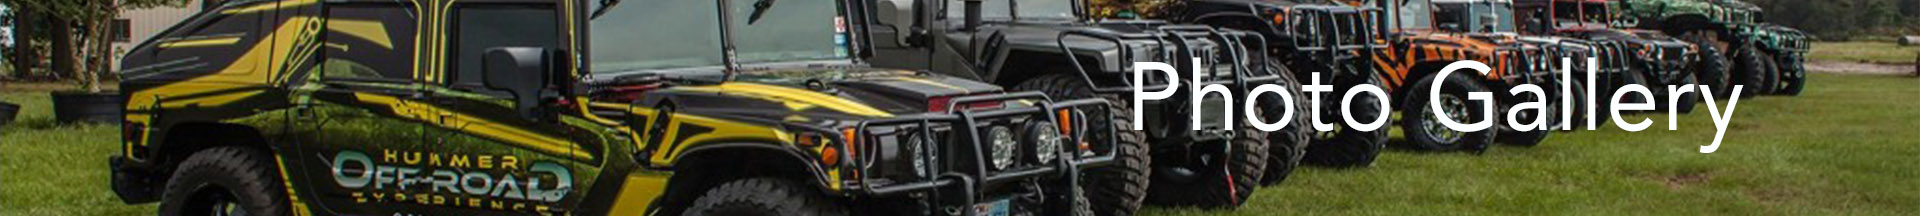 www.widebodyhummer.com/